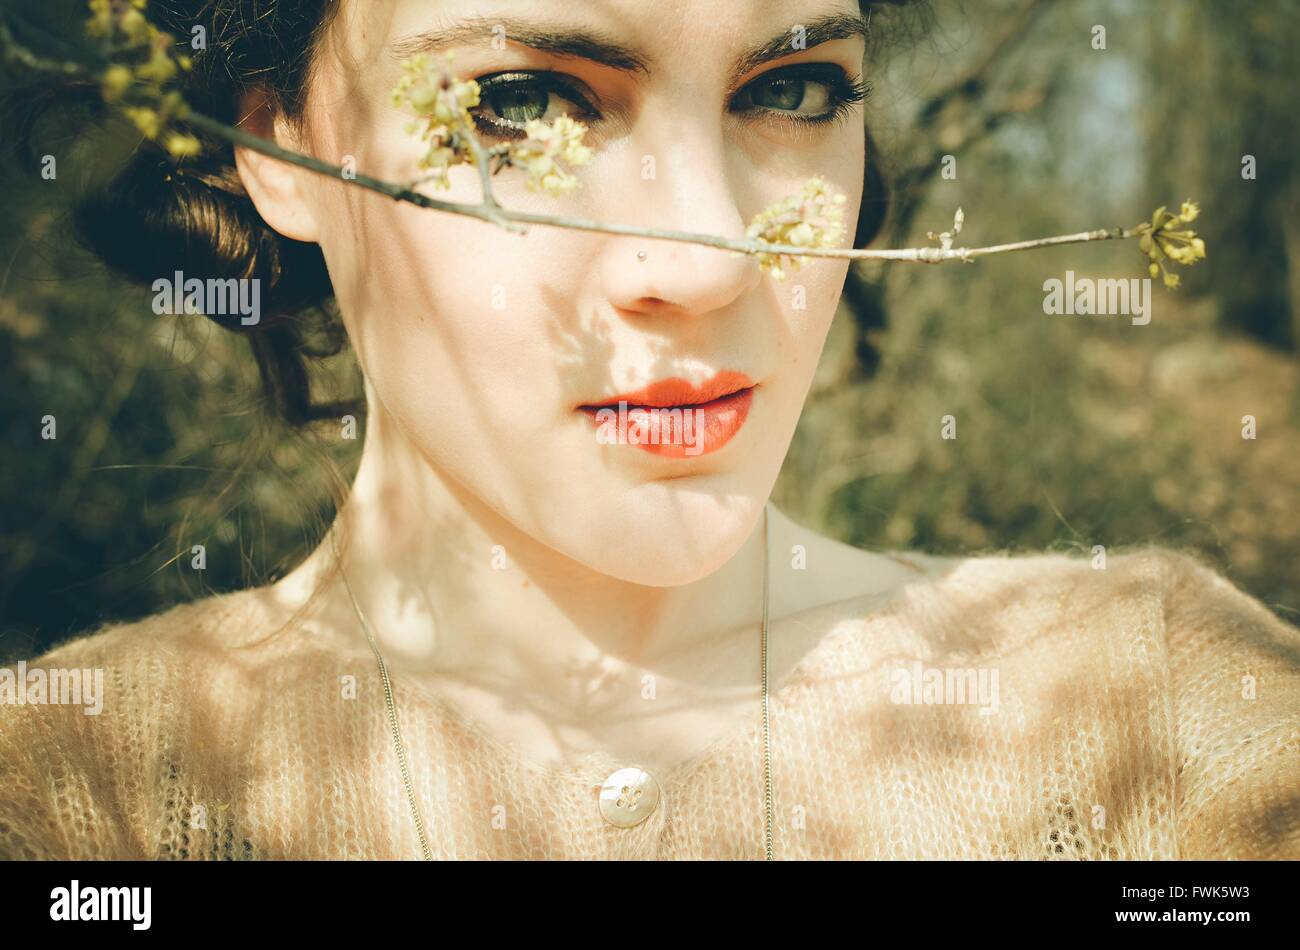 Portrait Of Beautiful Woman By Twig - Stock Image